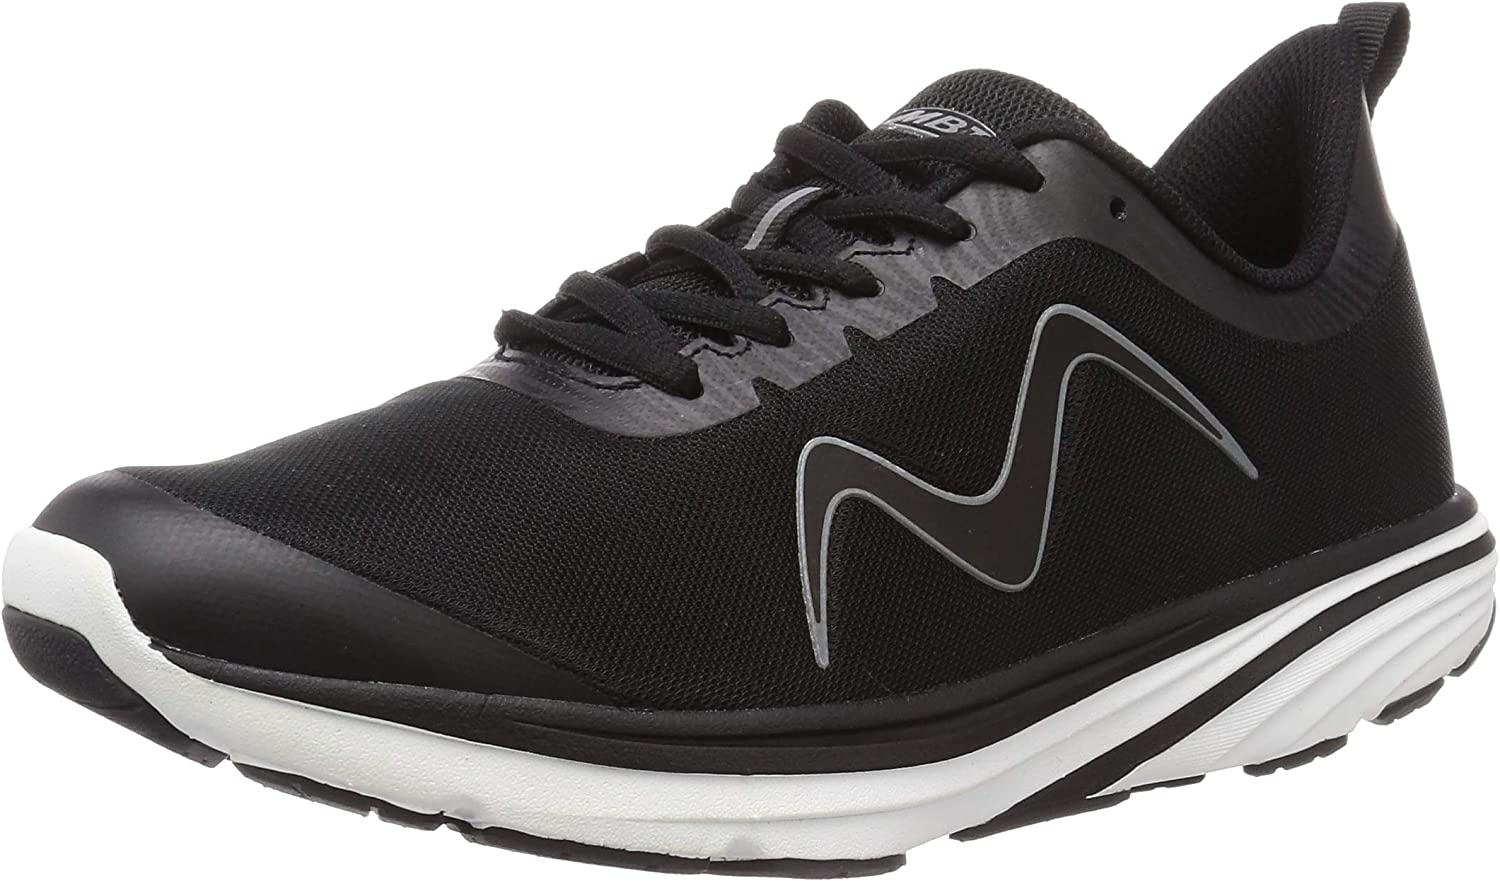 MBT Rocker 2021 spring and summer new Bottom New sales Shoes Men's Running Speed-1200 Athletic – Shoe